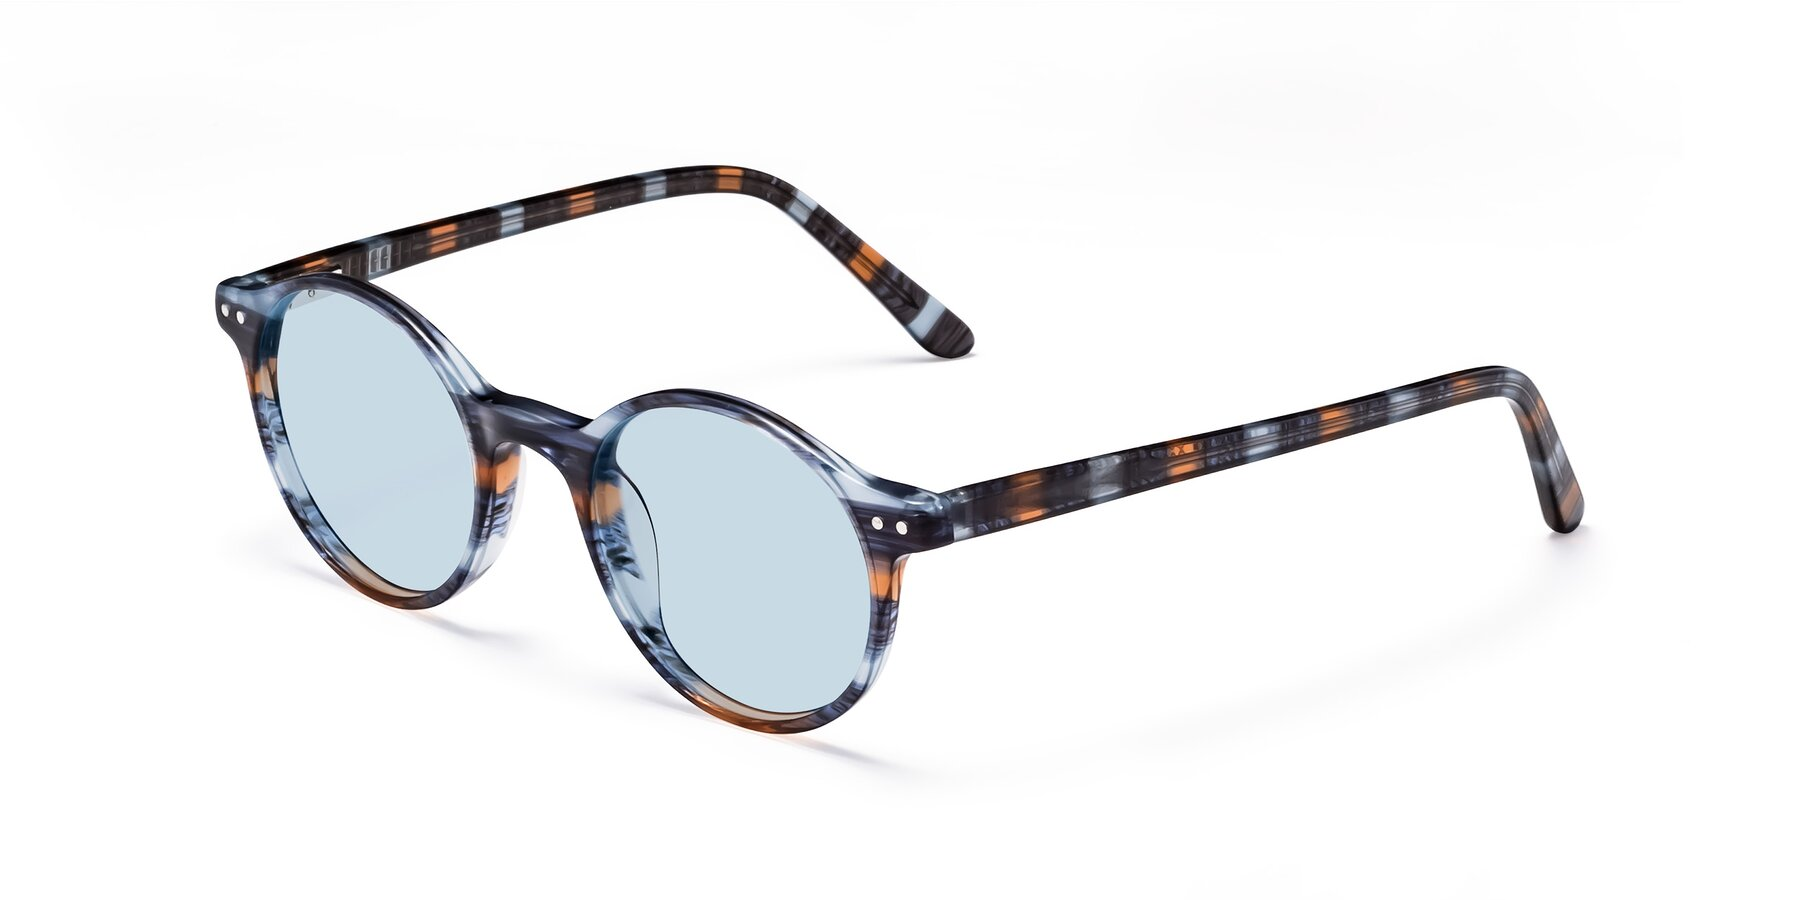 Angle of 17519 in Stripe Blue Brown with Light Blue Tinted Lenses